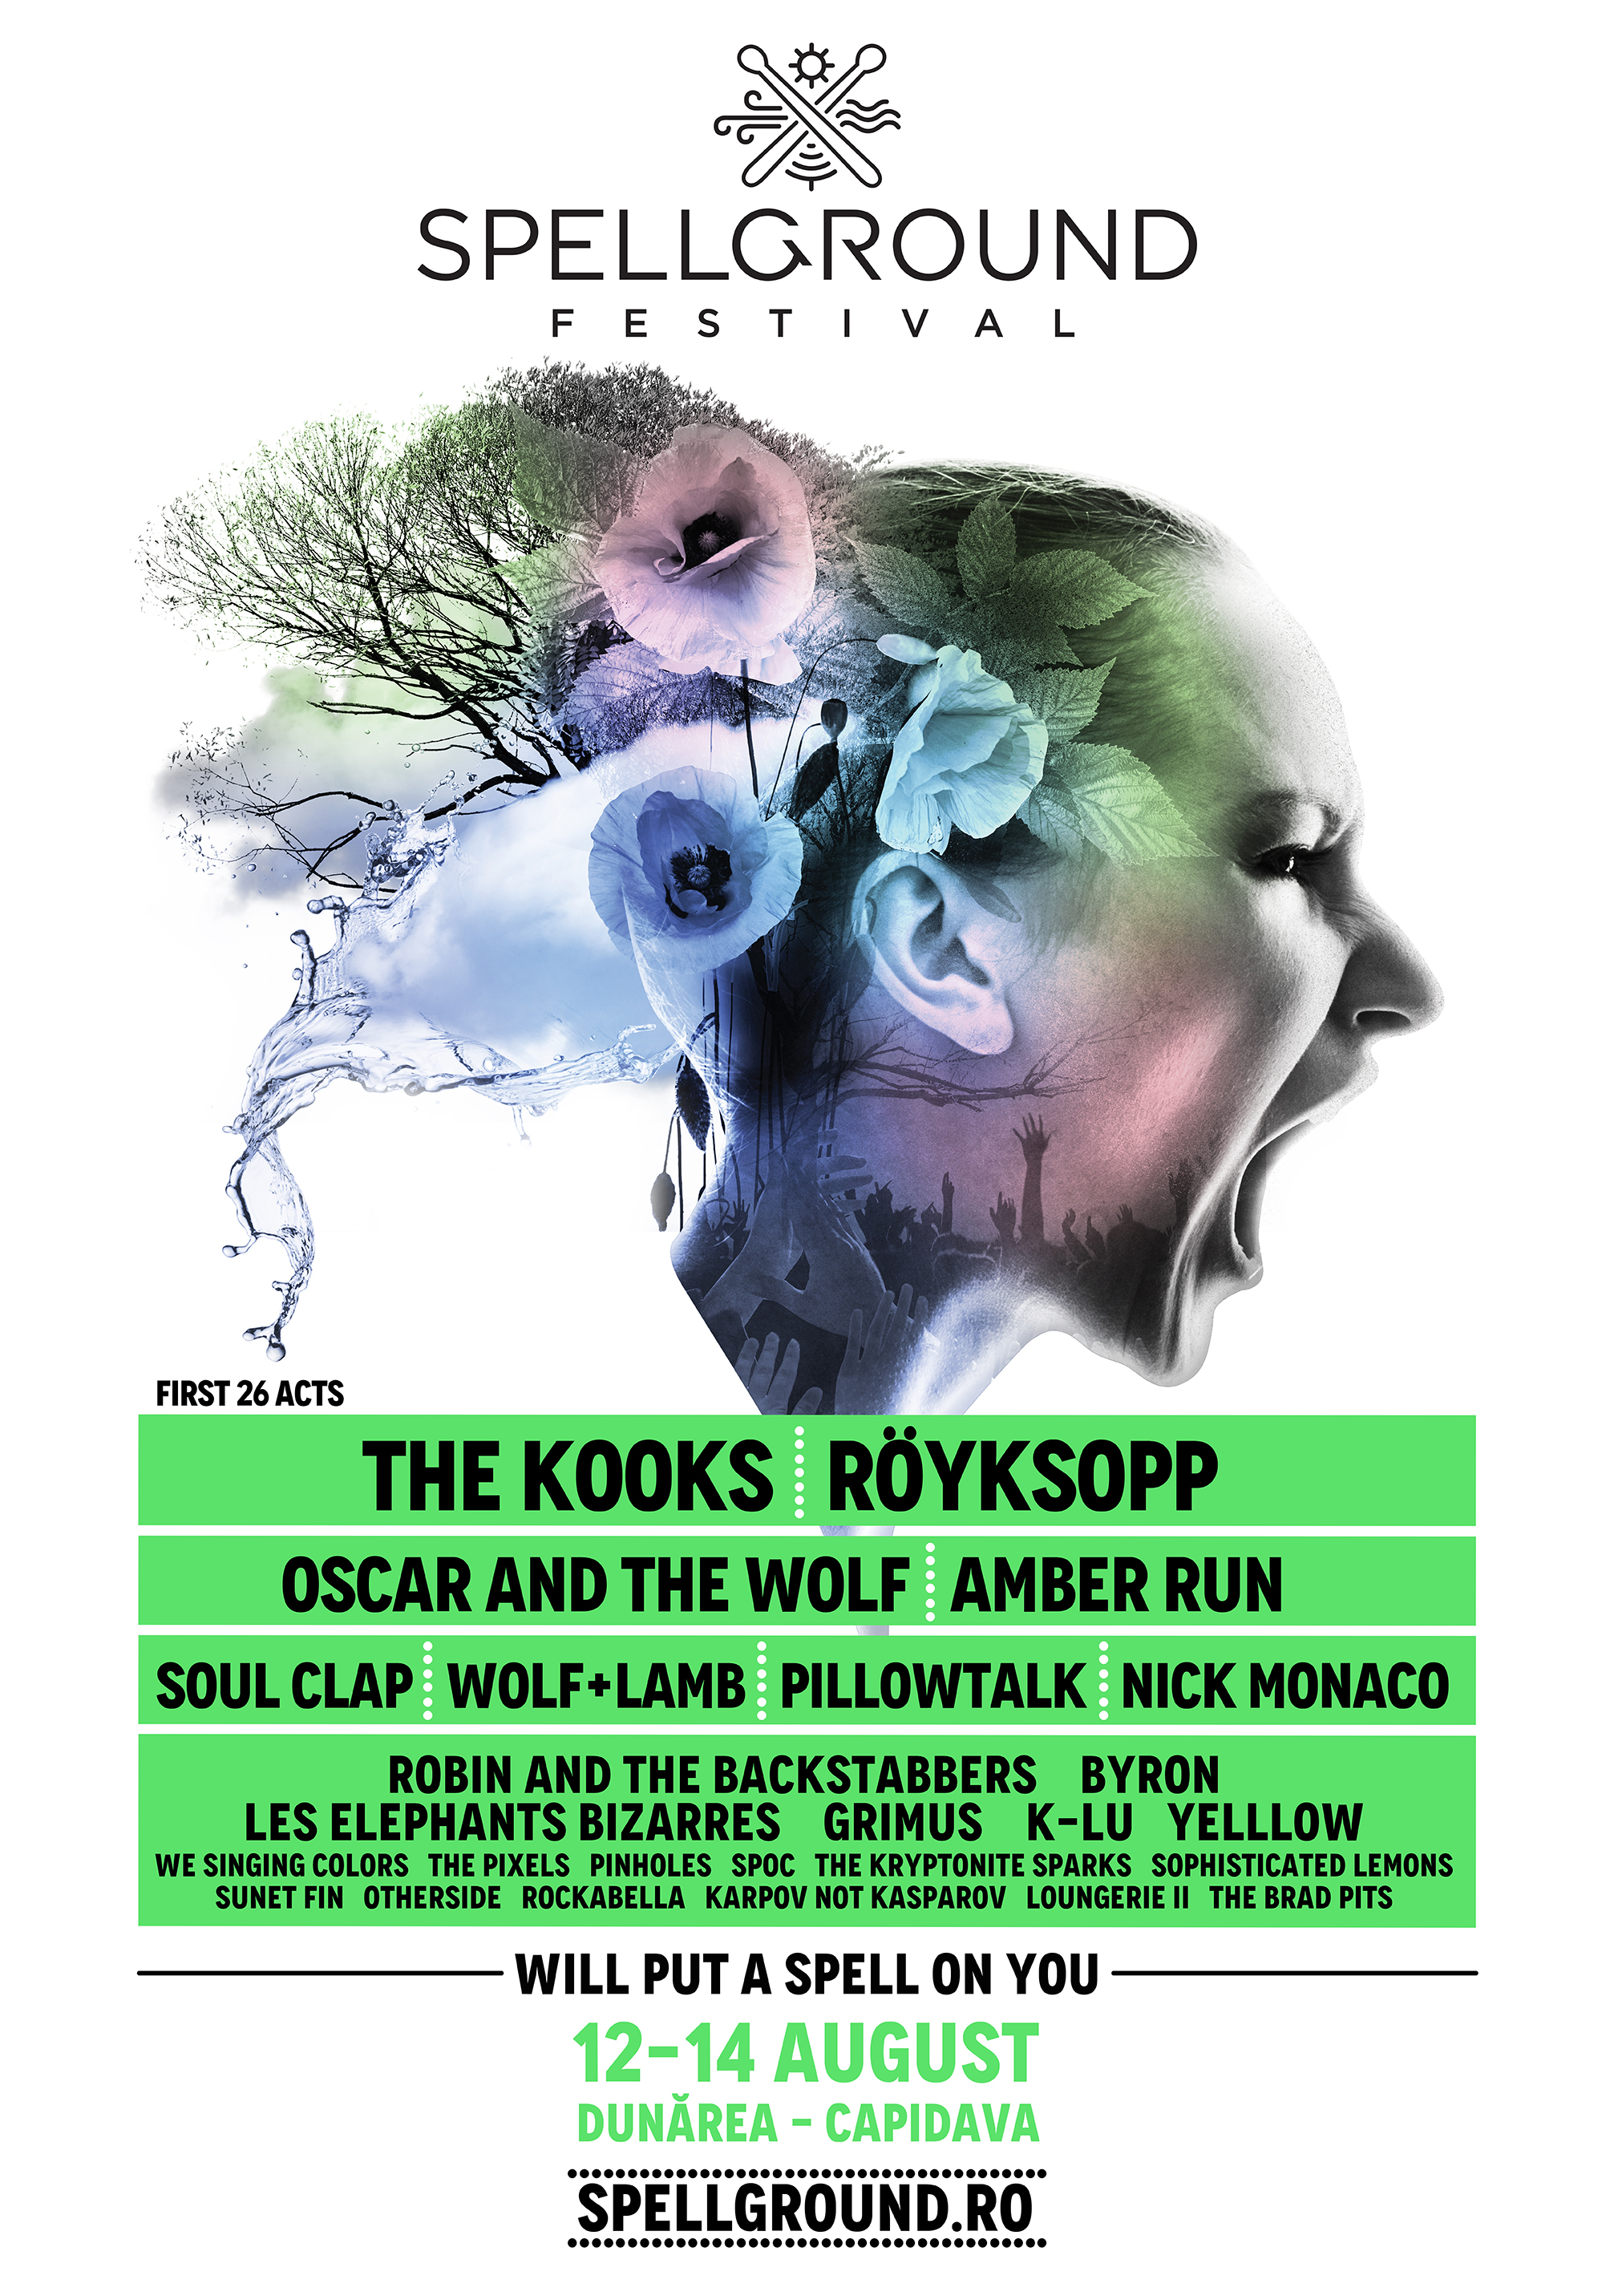 SPELLGROUND FESTIVAL: THE KOOKS | RÖYKSOPP